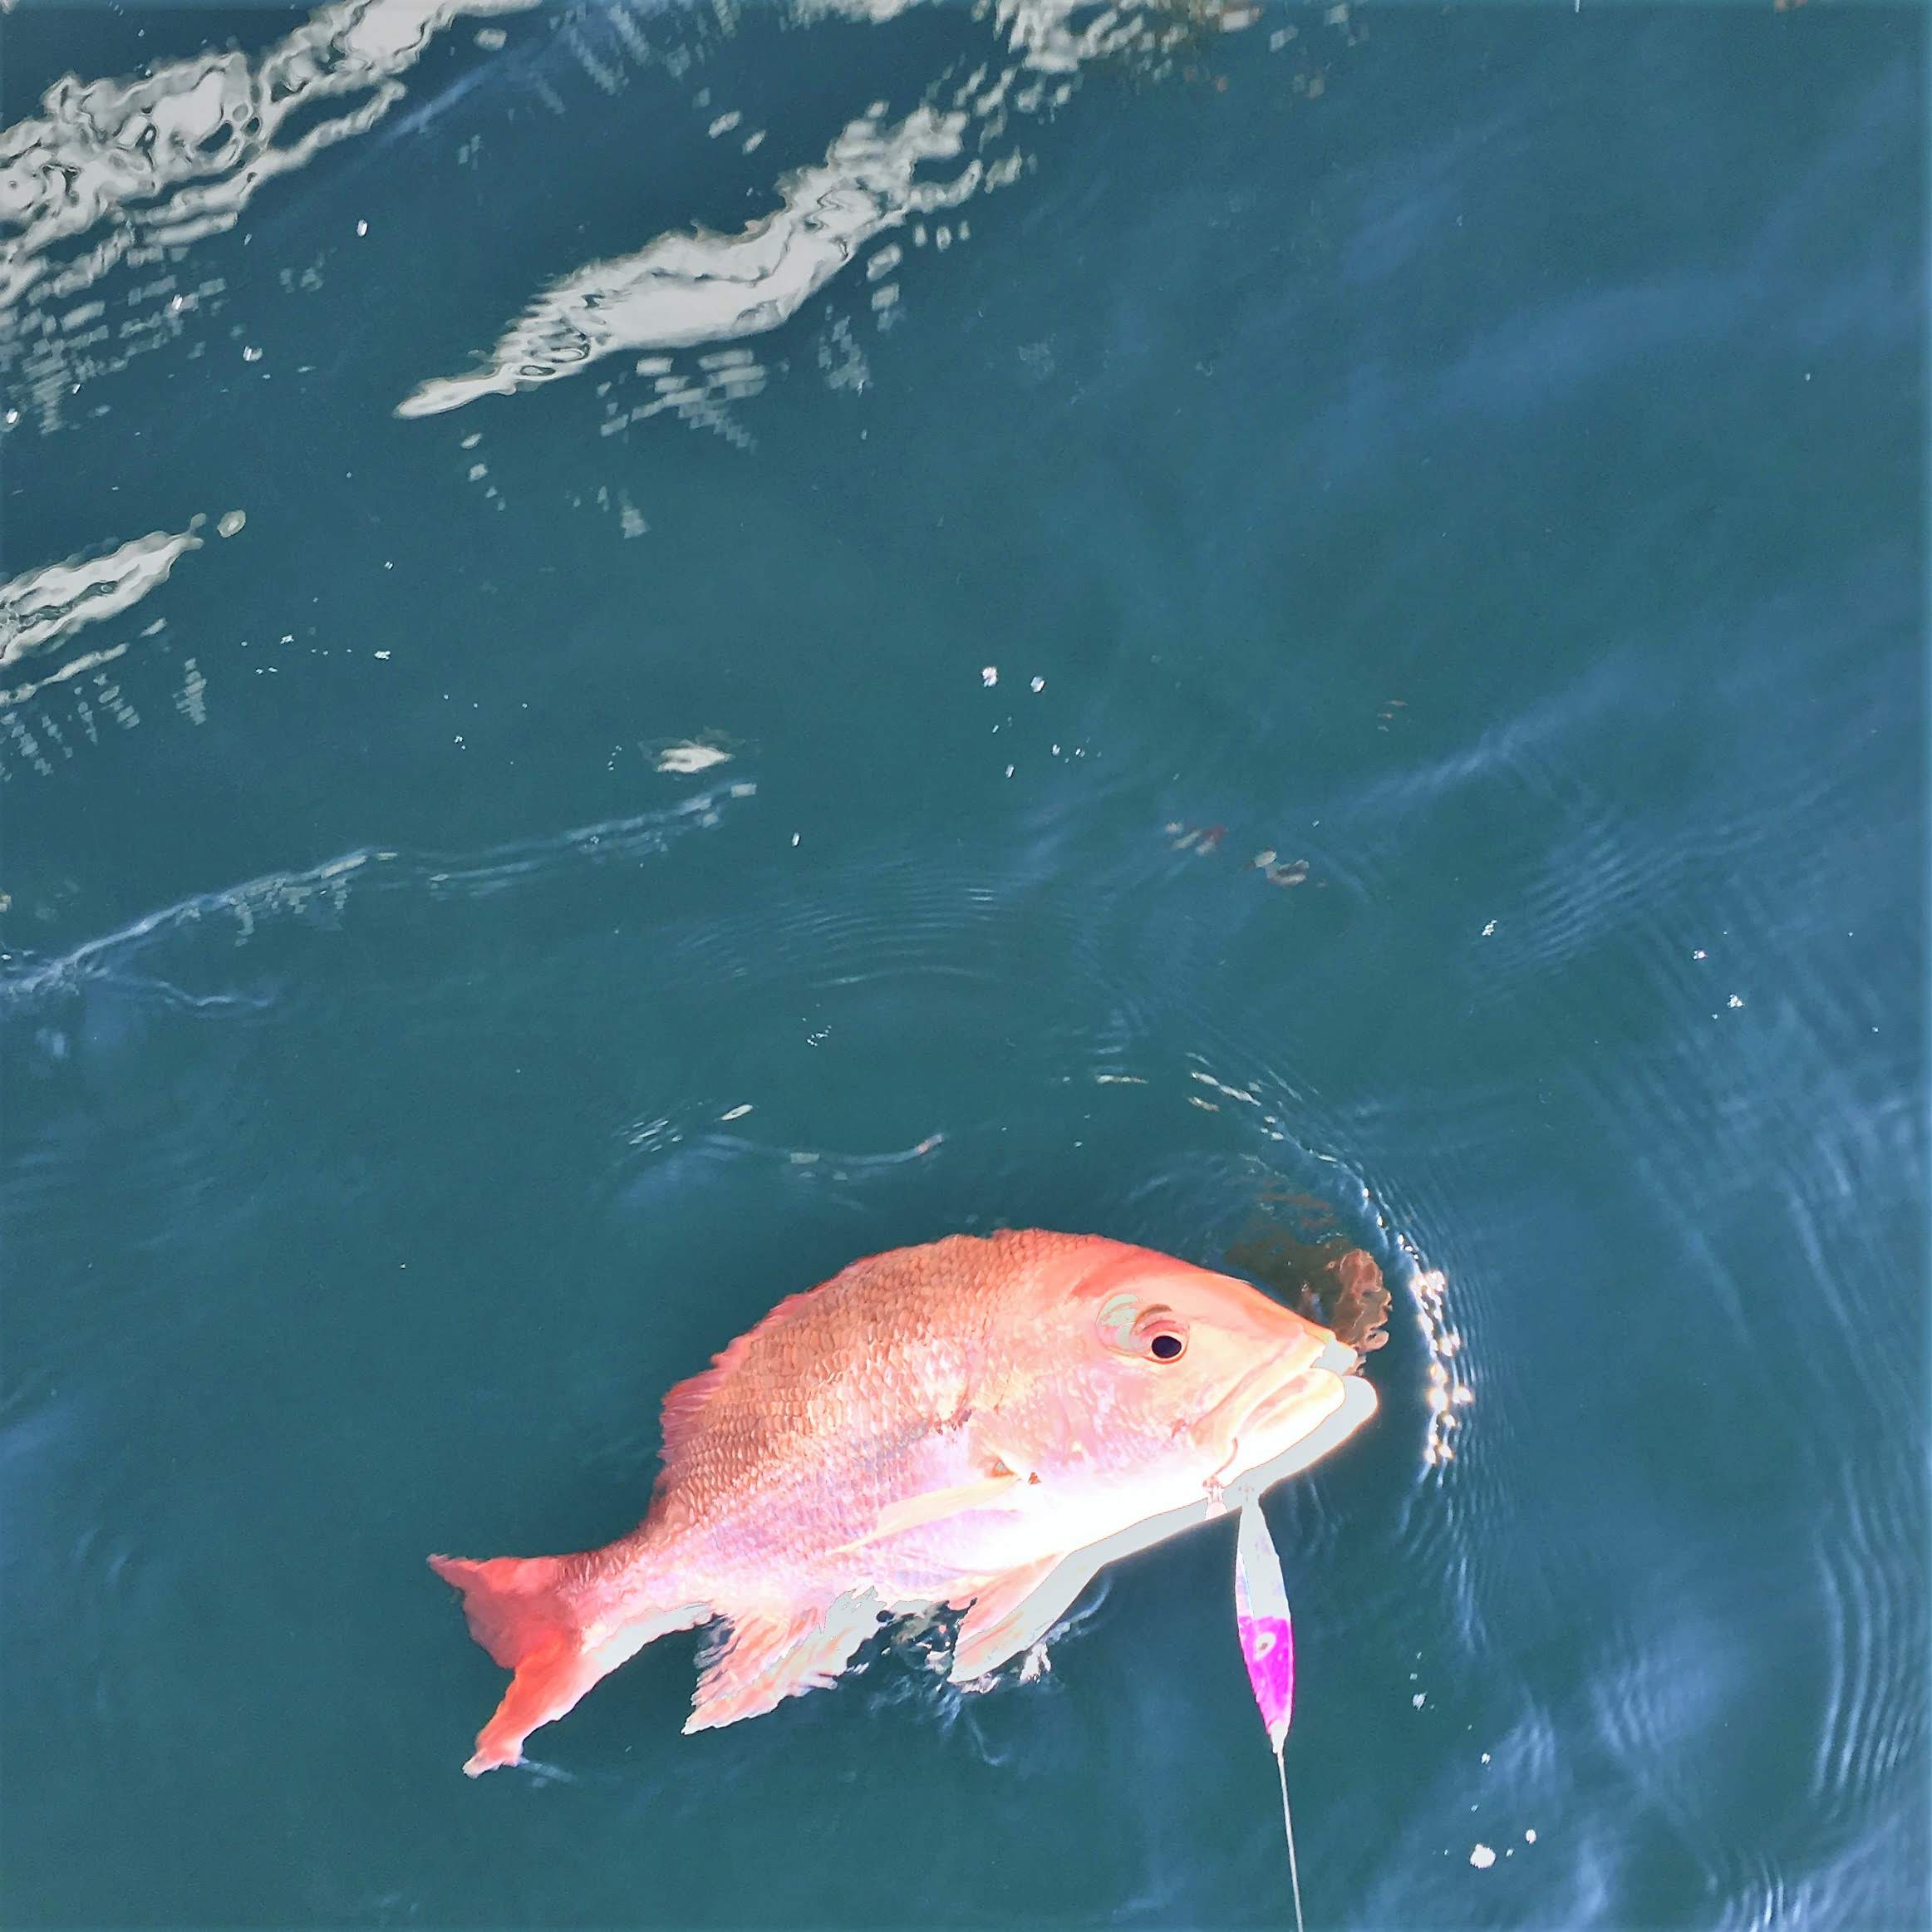 """Red Snapper 3 oz Pink Glow """"Awesome Lure. Fished 3 separate days with quality snapper and trigger almost each drop. Some times they hit the jig dead in the water moving back to the spot. One grouper. There were some nicks and tears in the cover, but still productive. Finally cut off probably by a king."""" Steve Suggs MD"""